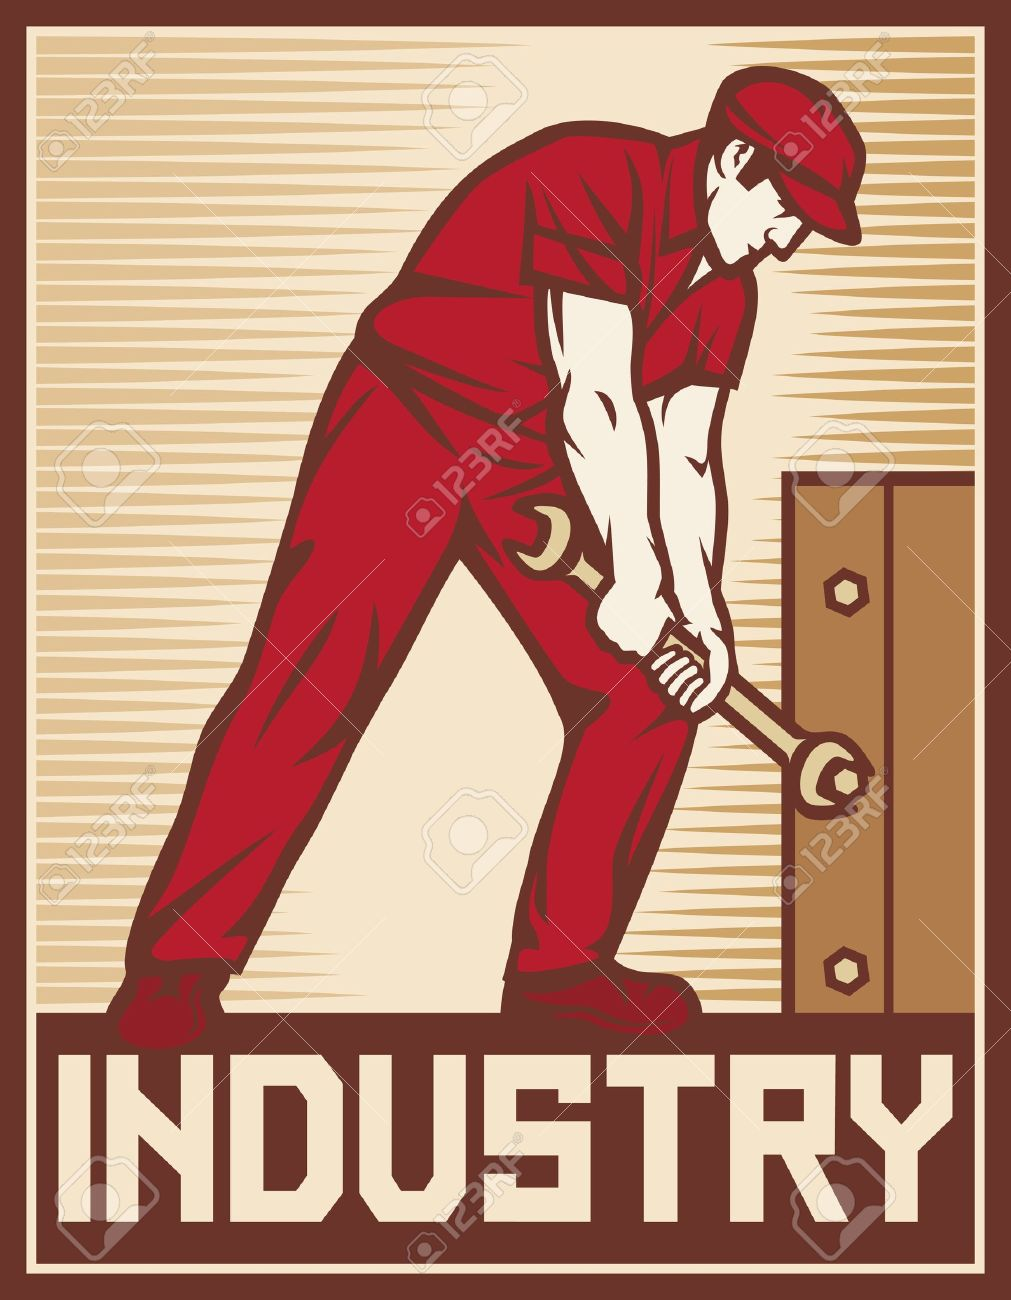 Worker Holding Wrench - Industry Poster Industry Design, Worker ...